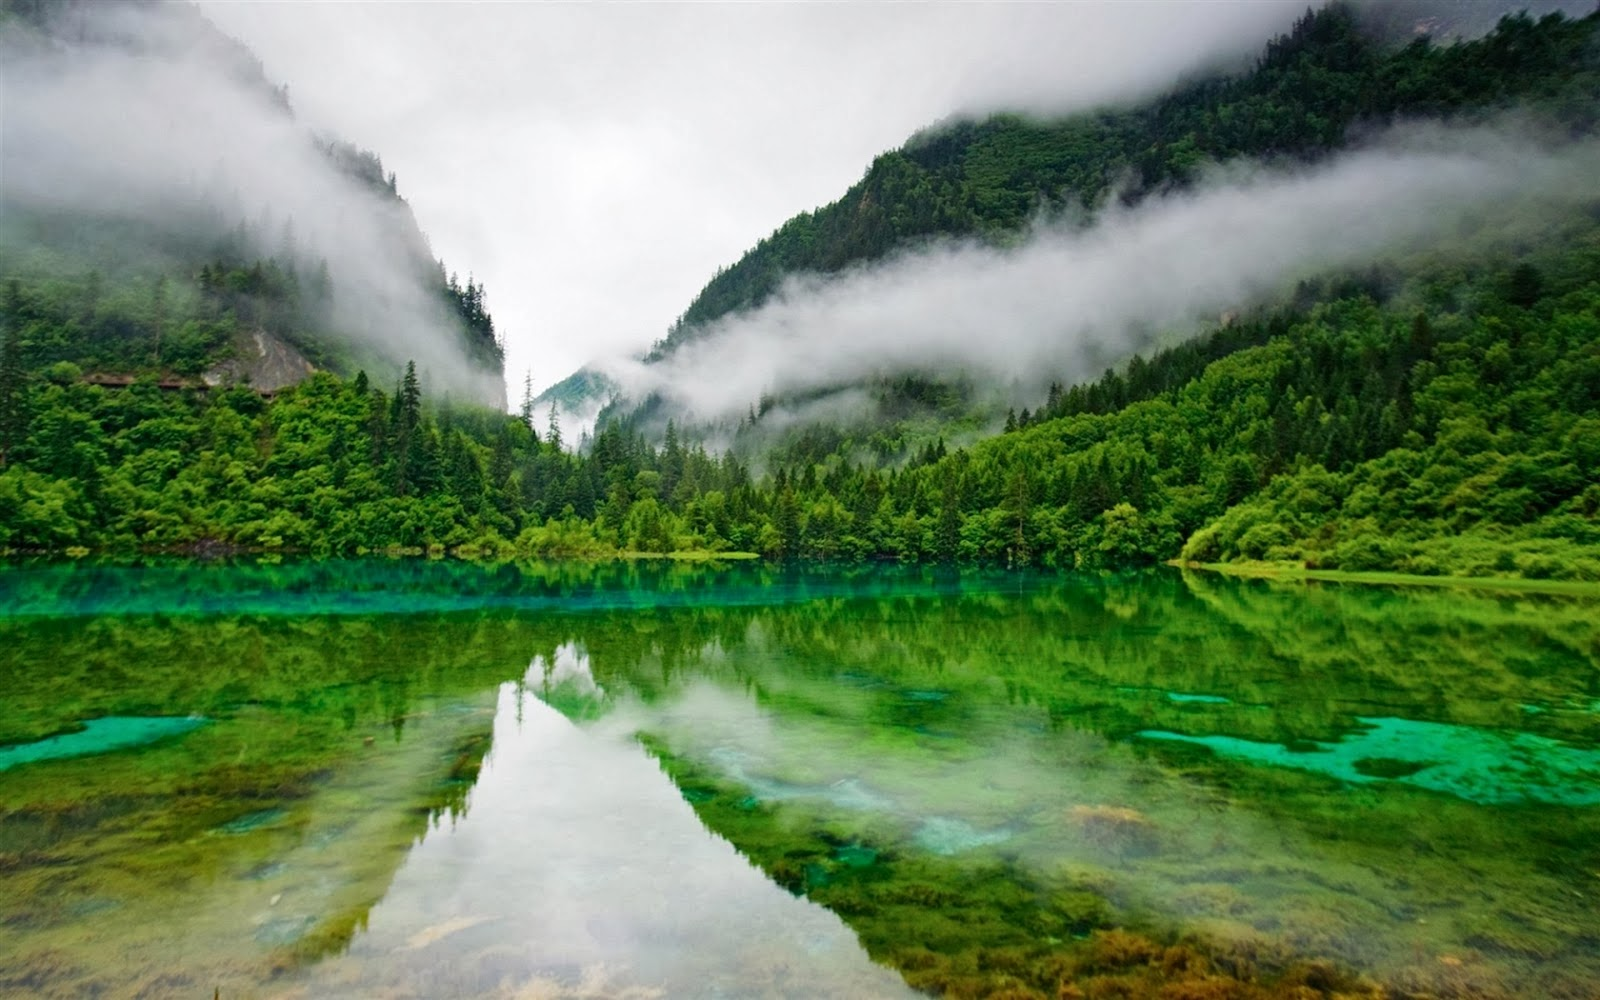 Paradise Lake Green Nature Widescreen HD Desktop Backgrounds Images Wallpapers